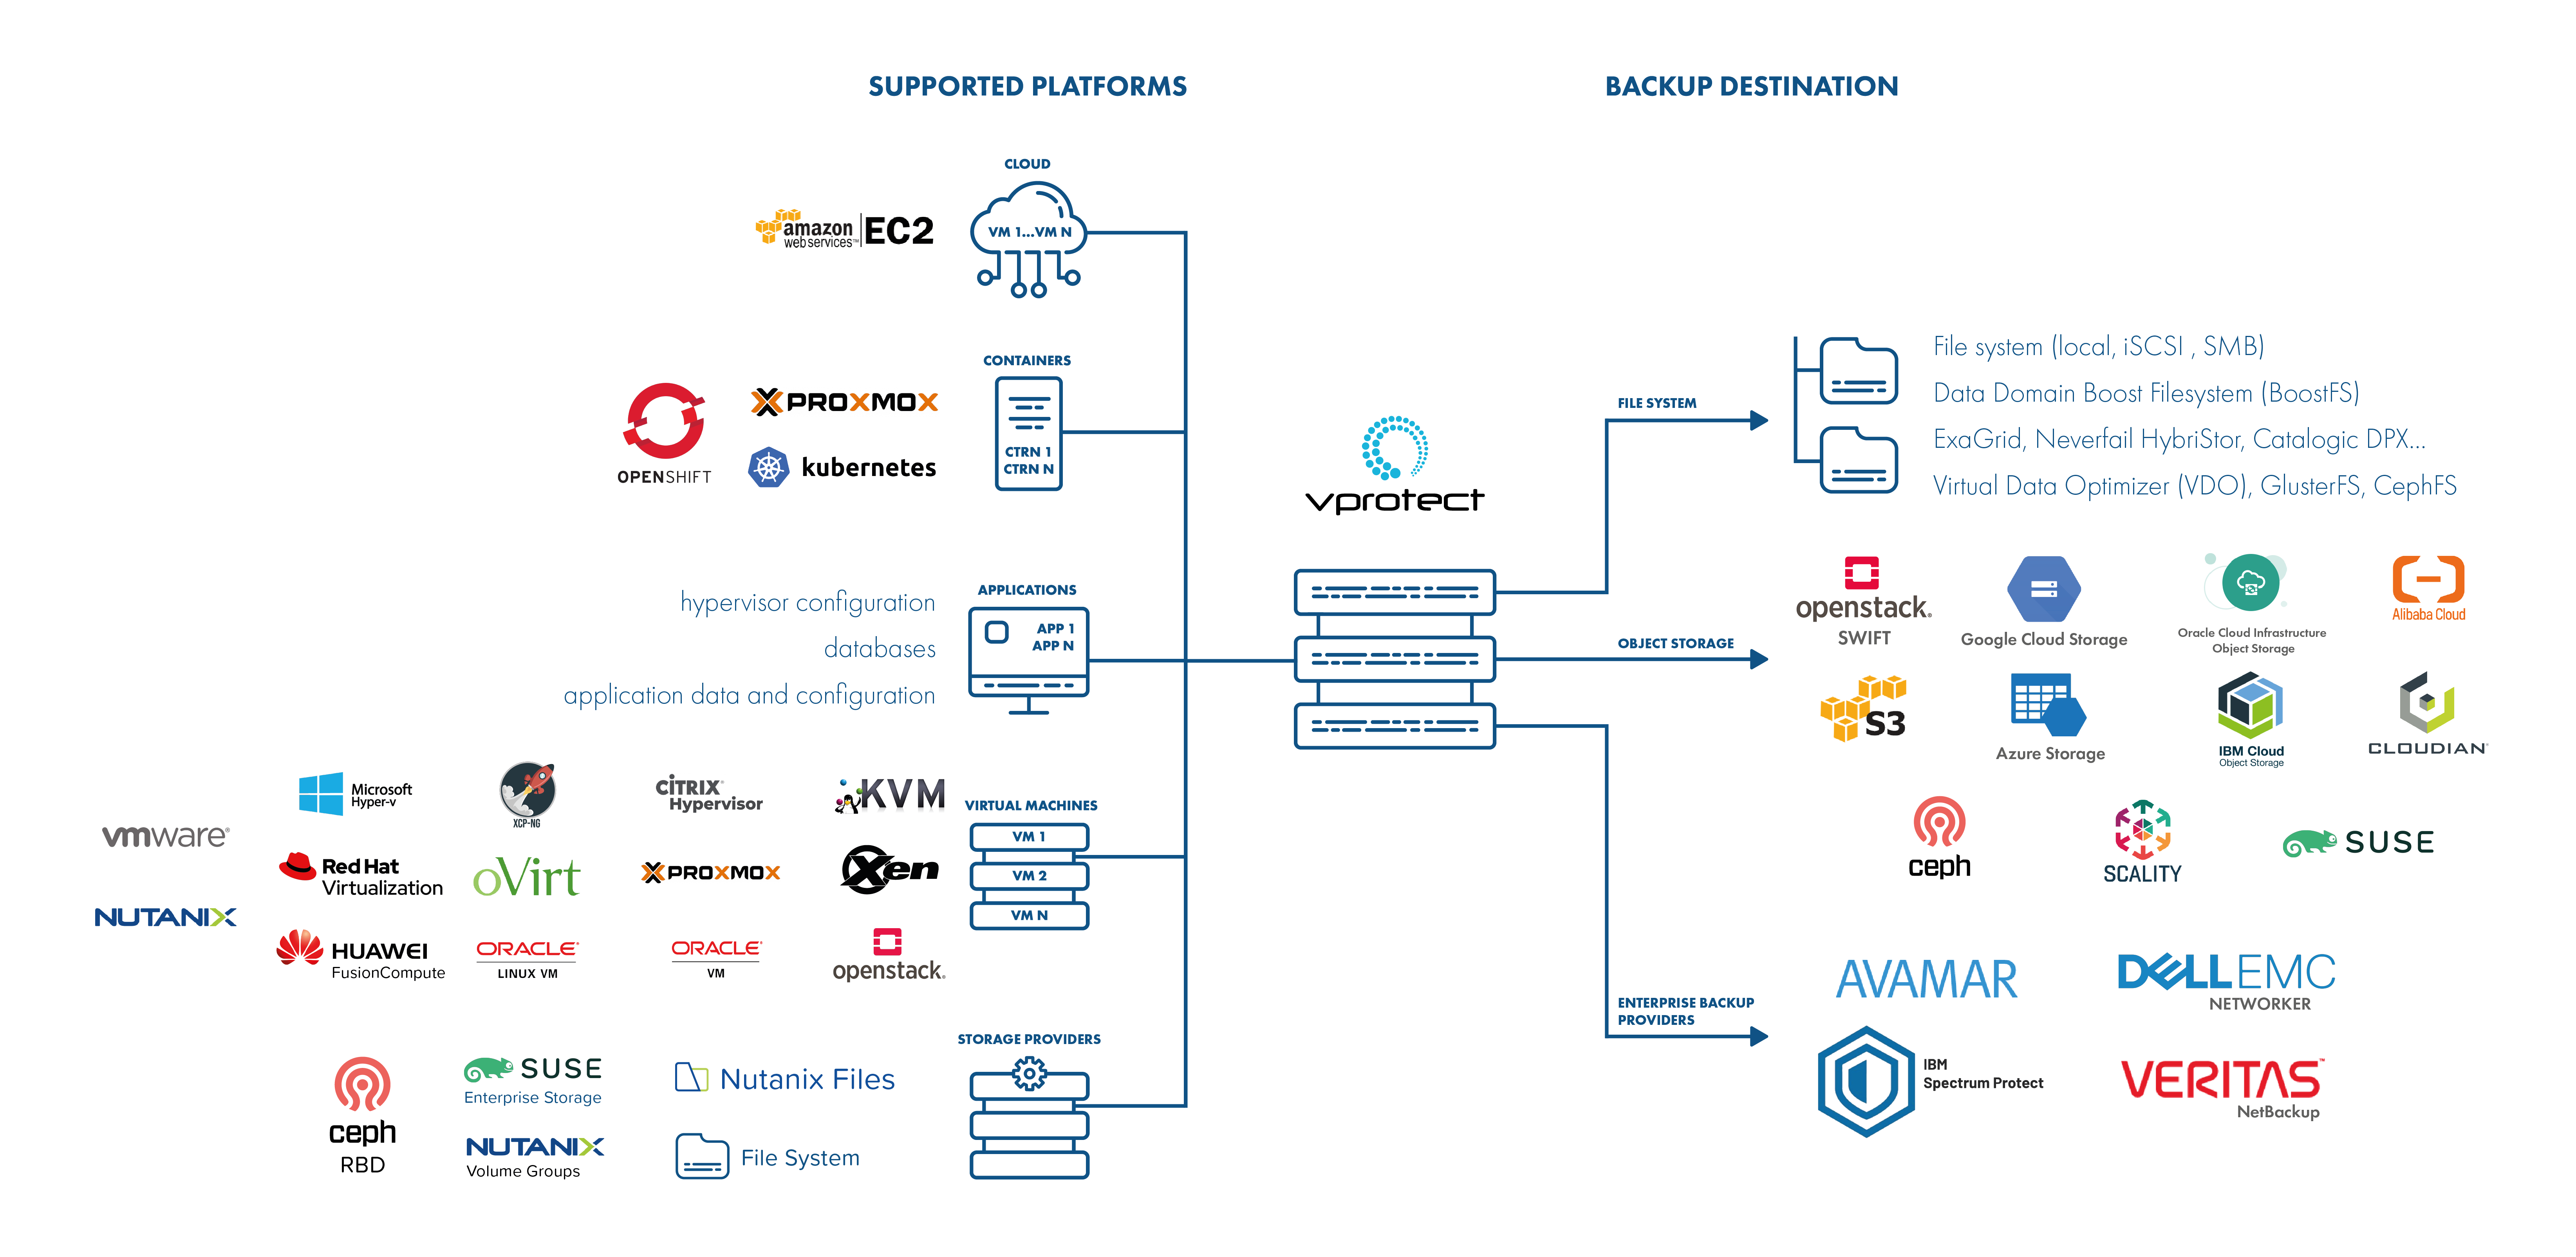 Enterprise-ready data backup and recovery solution architecture - vProtect 4.3 by Storware 2021